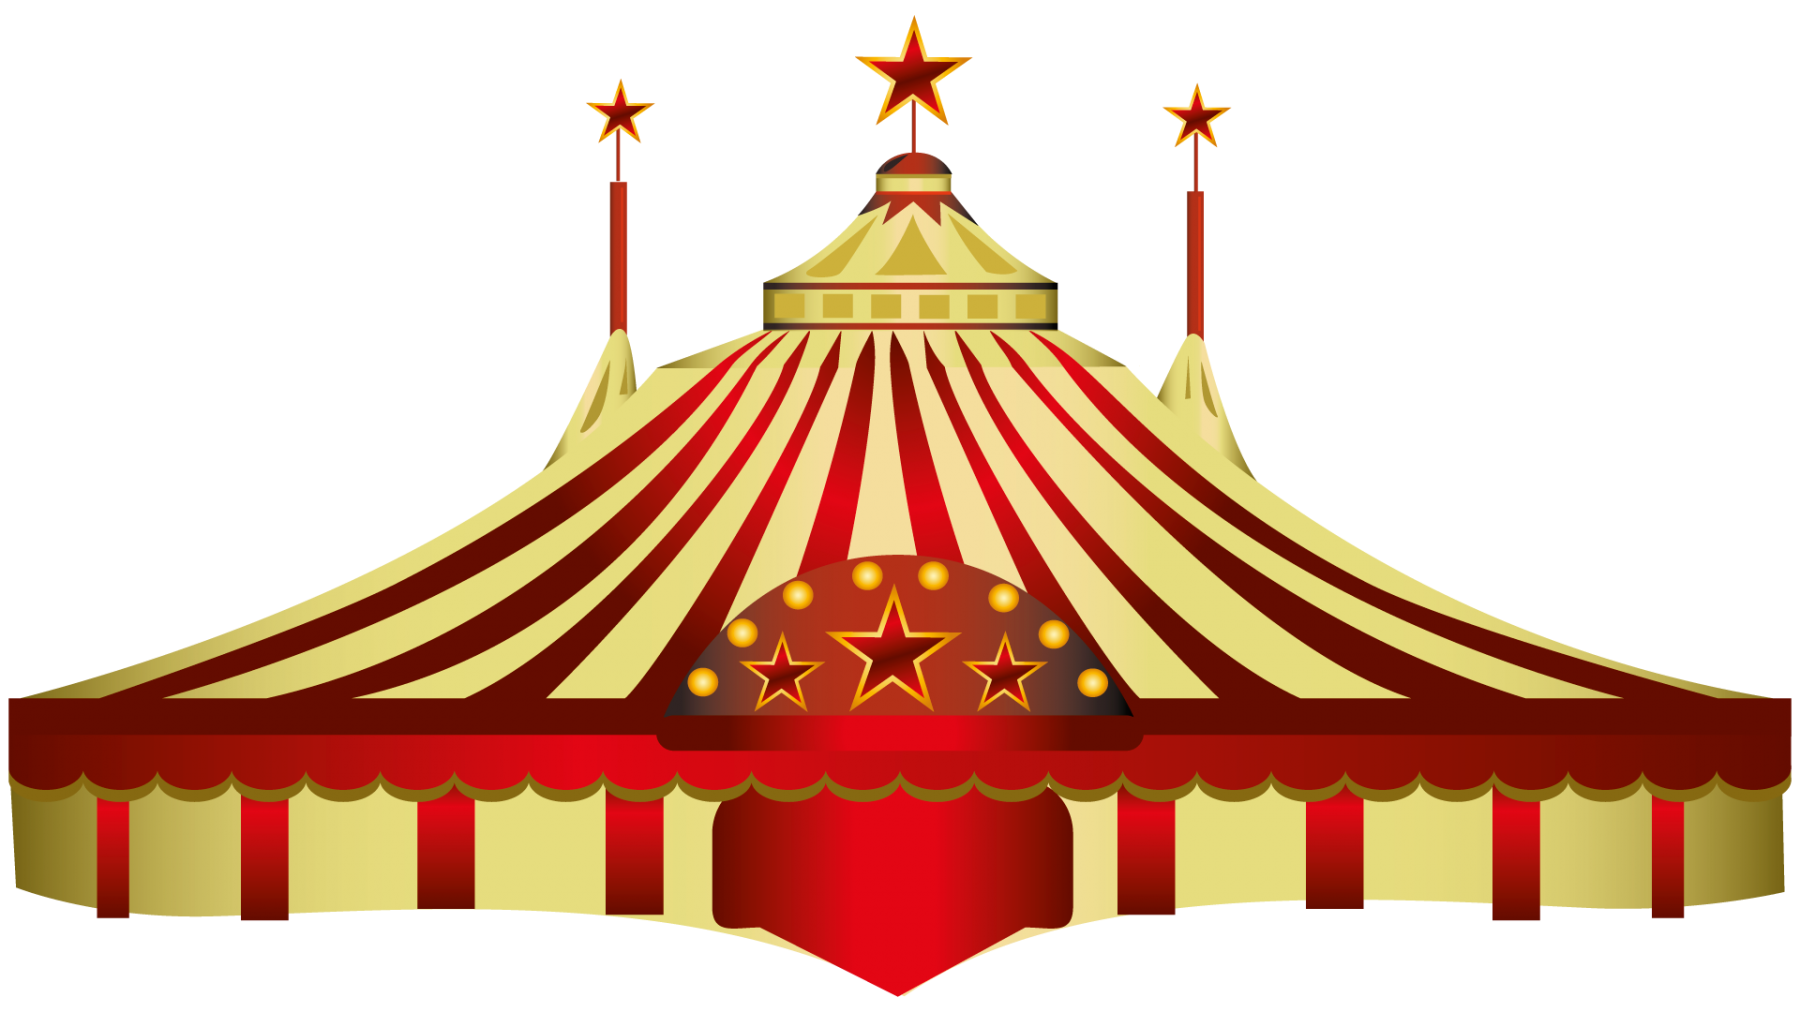 Cirque png 5 » PNG Image.